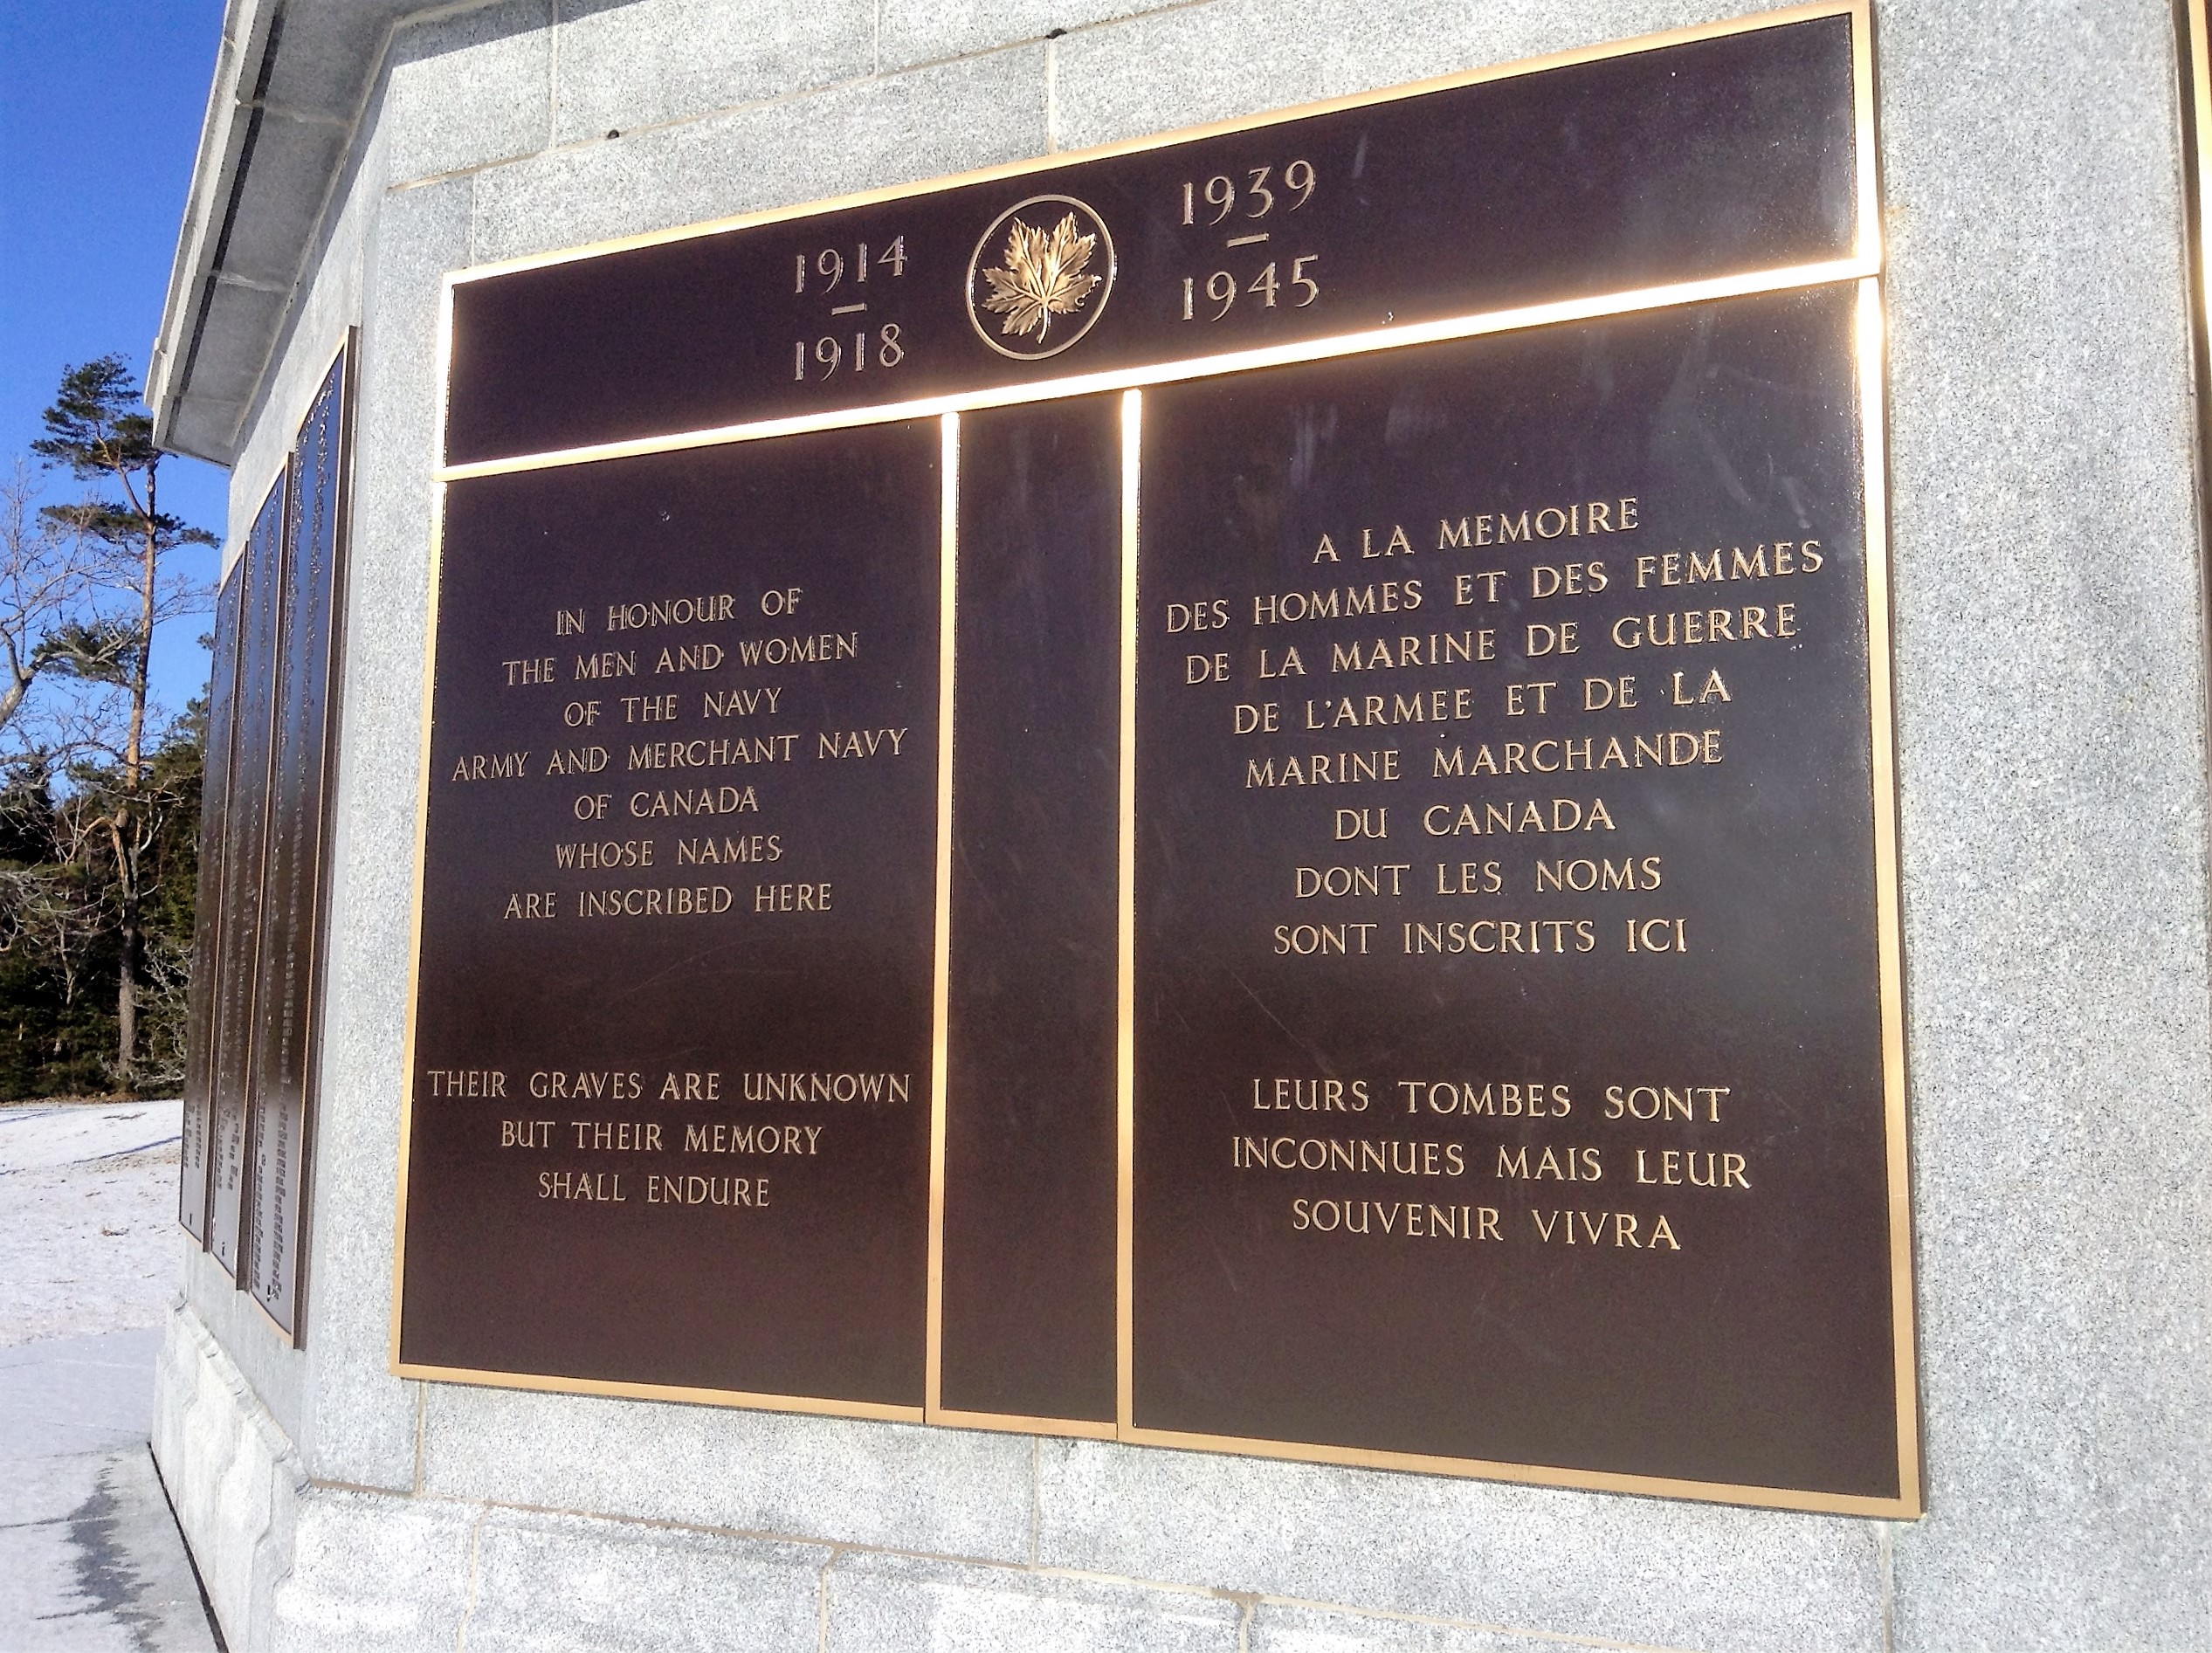 Dedication Panel– The dedication panel on the Halifax Memorial at Point Pleasant in Halifax, Nova Scotia, Canada, where William McKinstry Maitland-Dougall's name is inscribed. Image taken 9 February 2018 by Tom Tulloch.